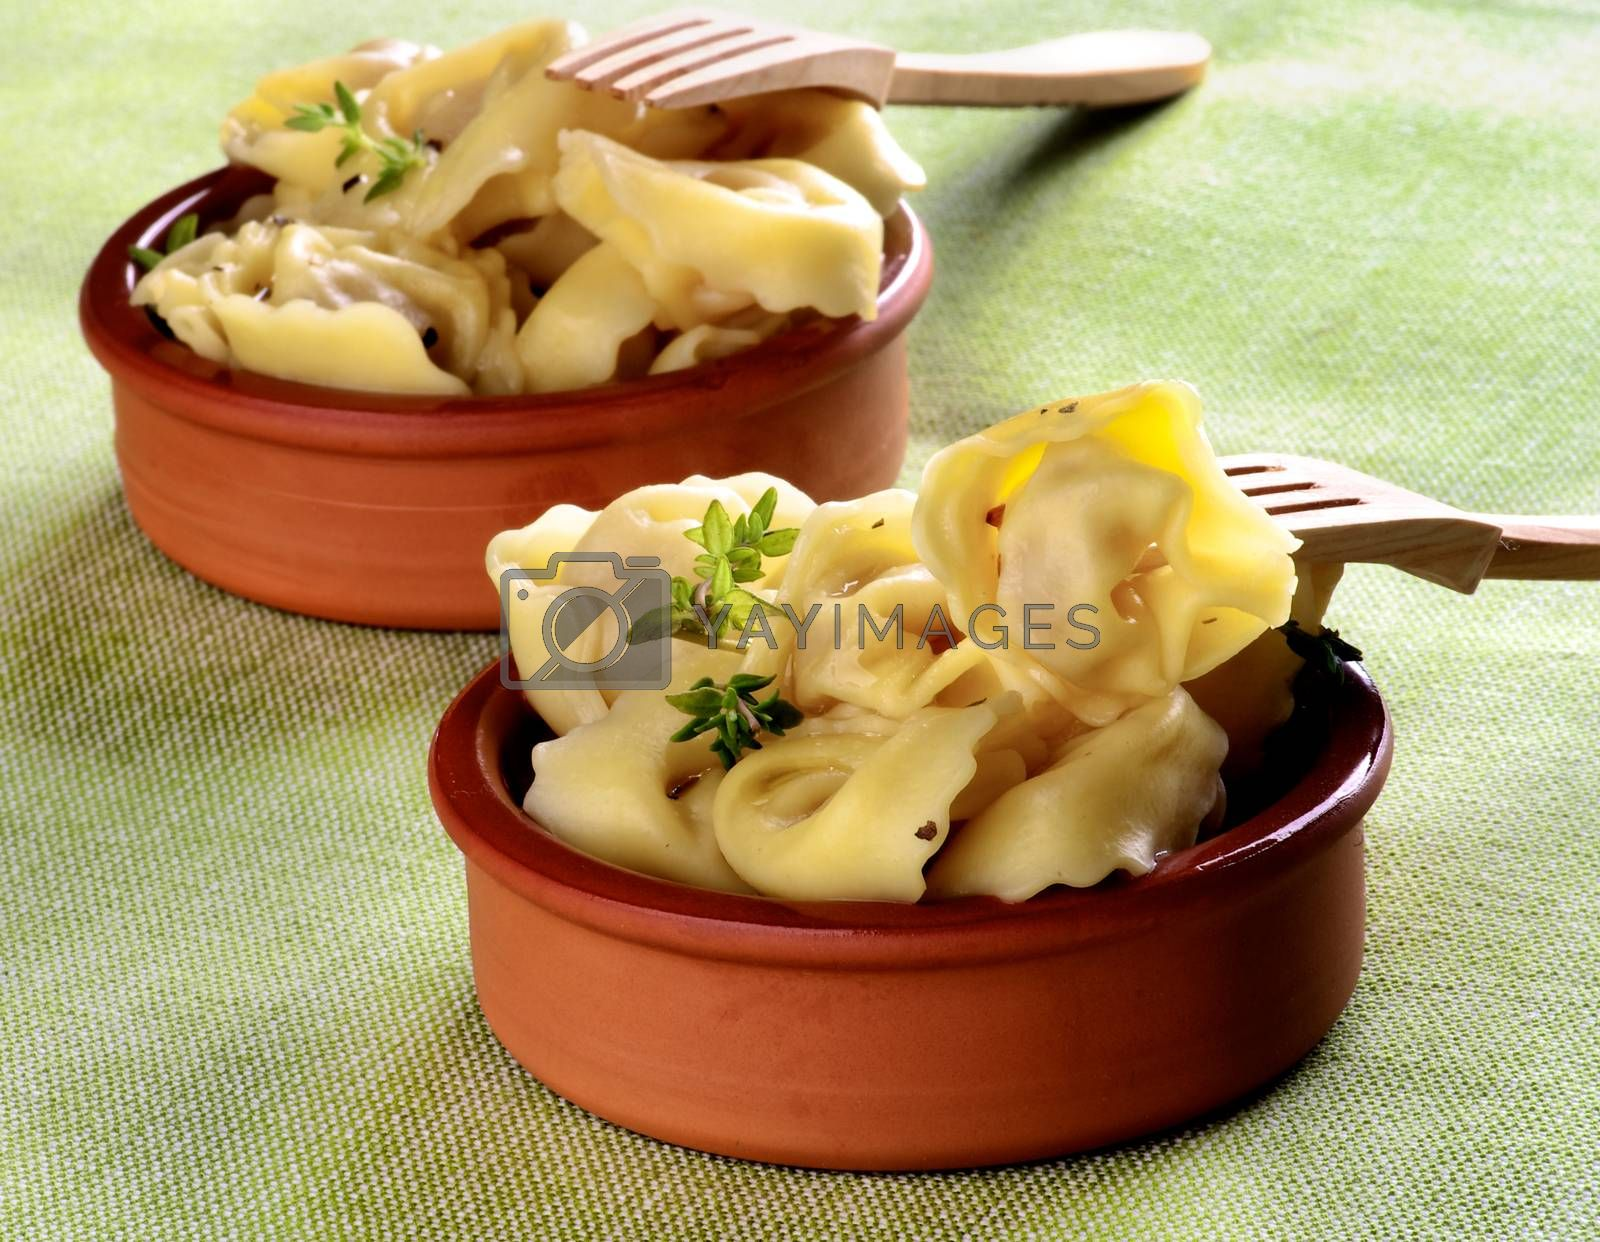 Delicious Meat Cappelletti with Herbs in Ceramic Bowls with Wooden Forks closeup on Green Napkin background